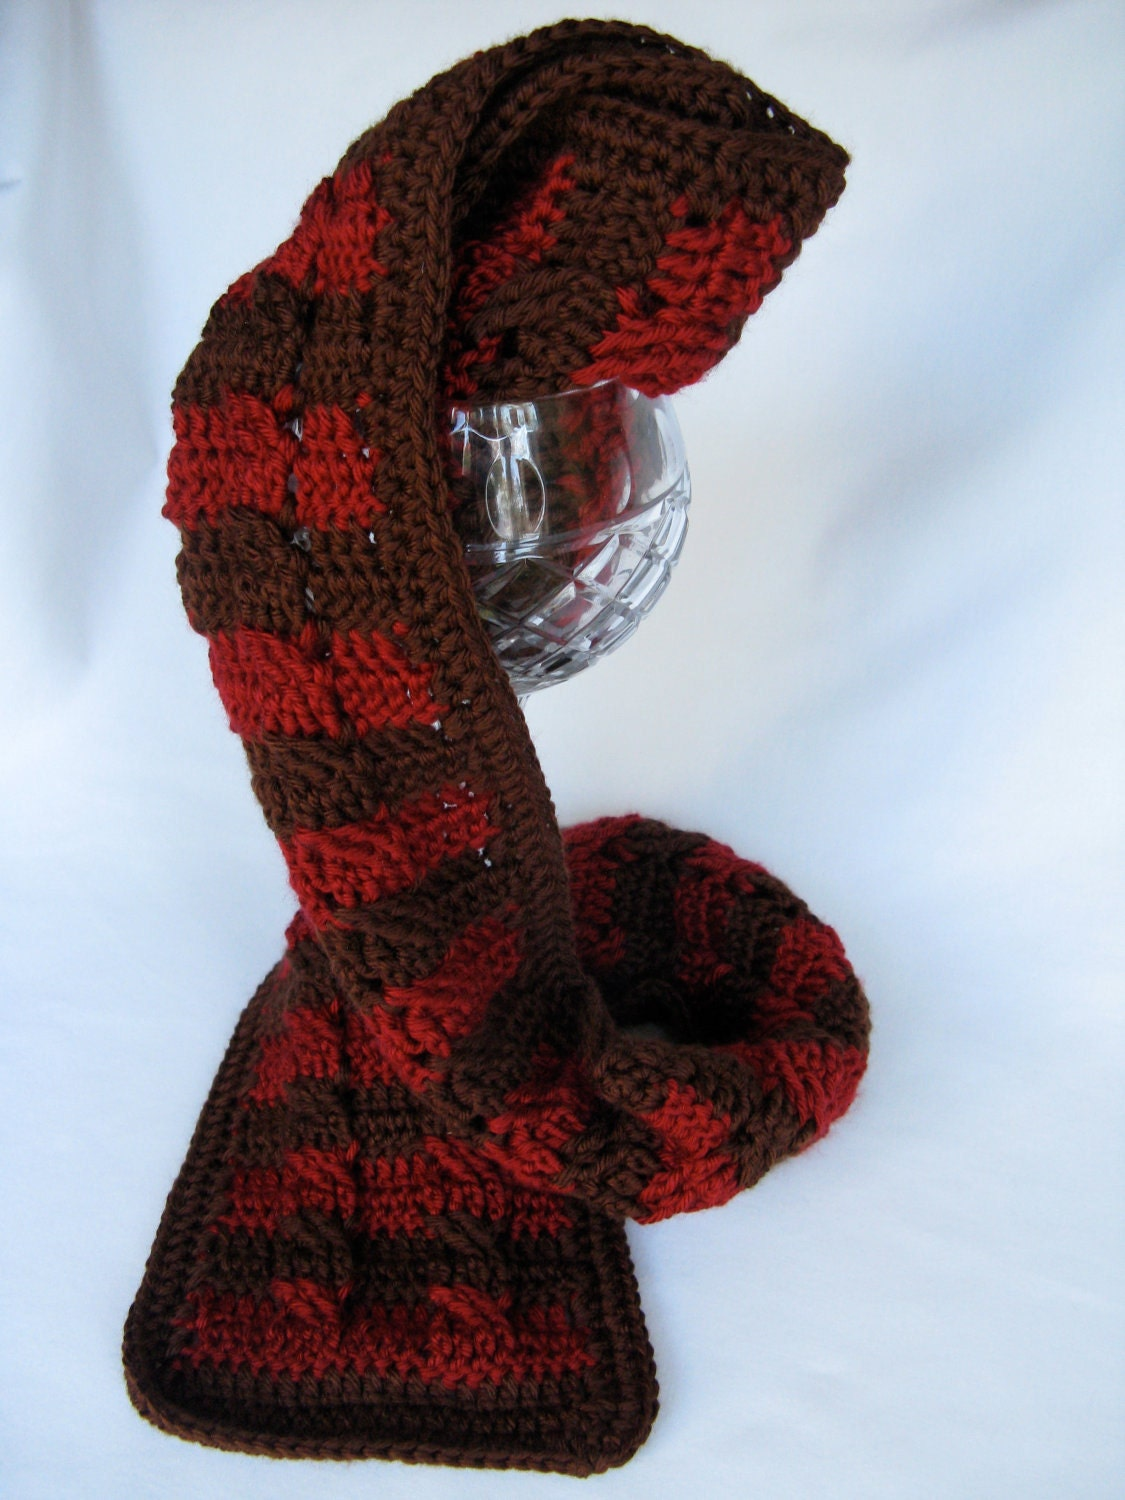 Striped Crochet Cabled Scarf - Chocolate and Cranberry - Unisex - Gift Idea